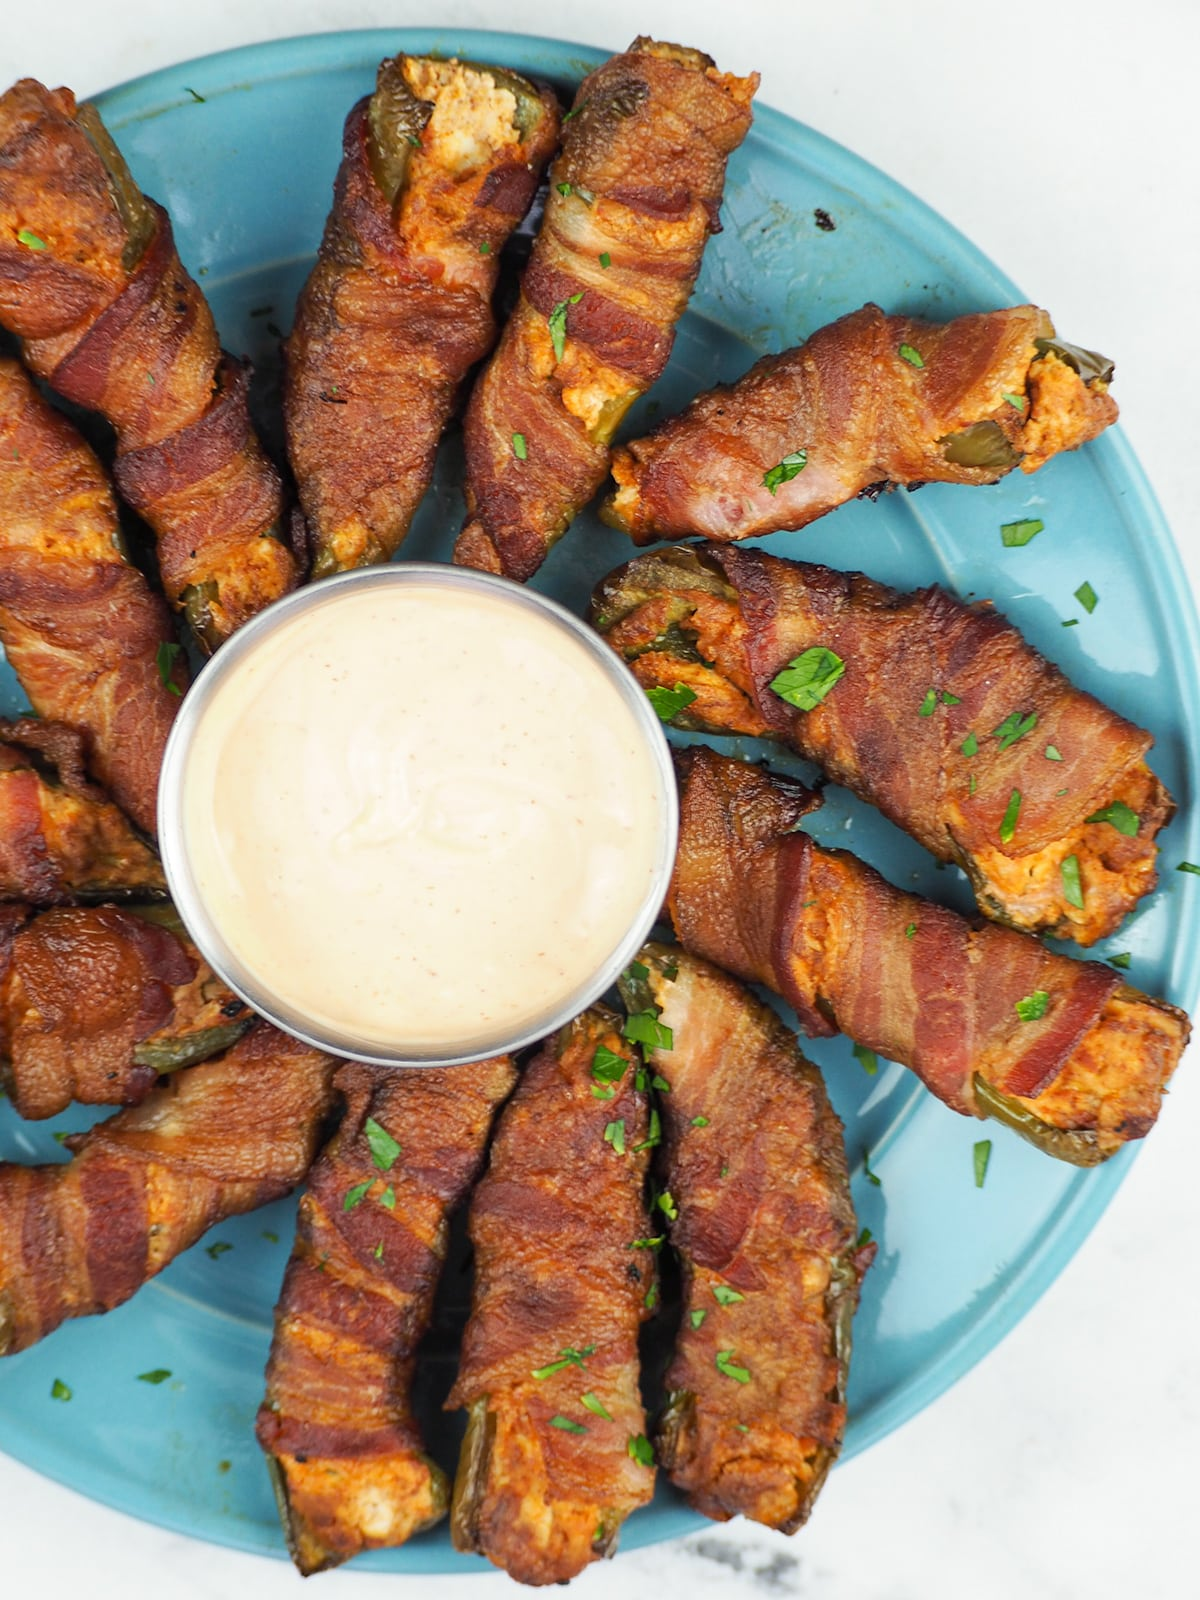 smoked jalapeno poppers arranged in a ring around a cup of dipping sauce on a blue plate